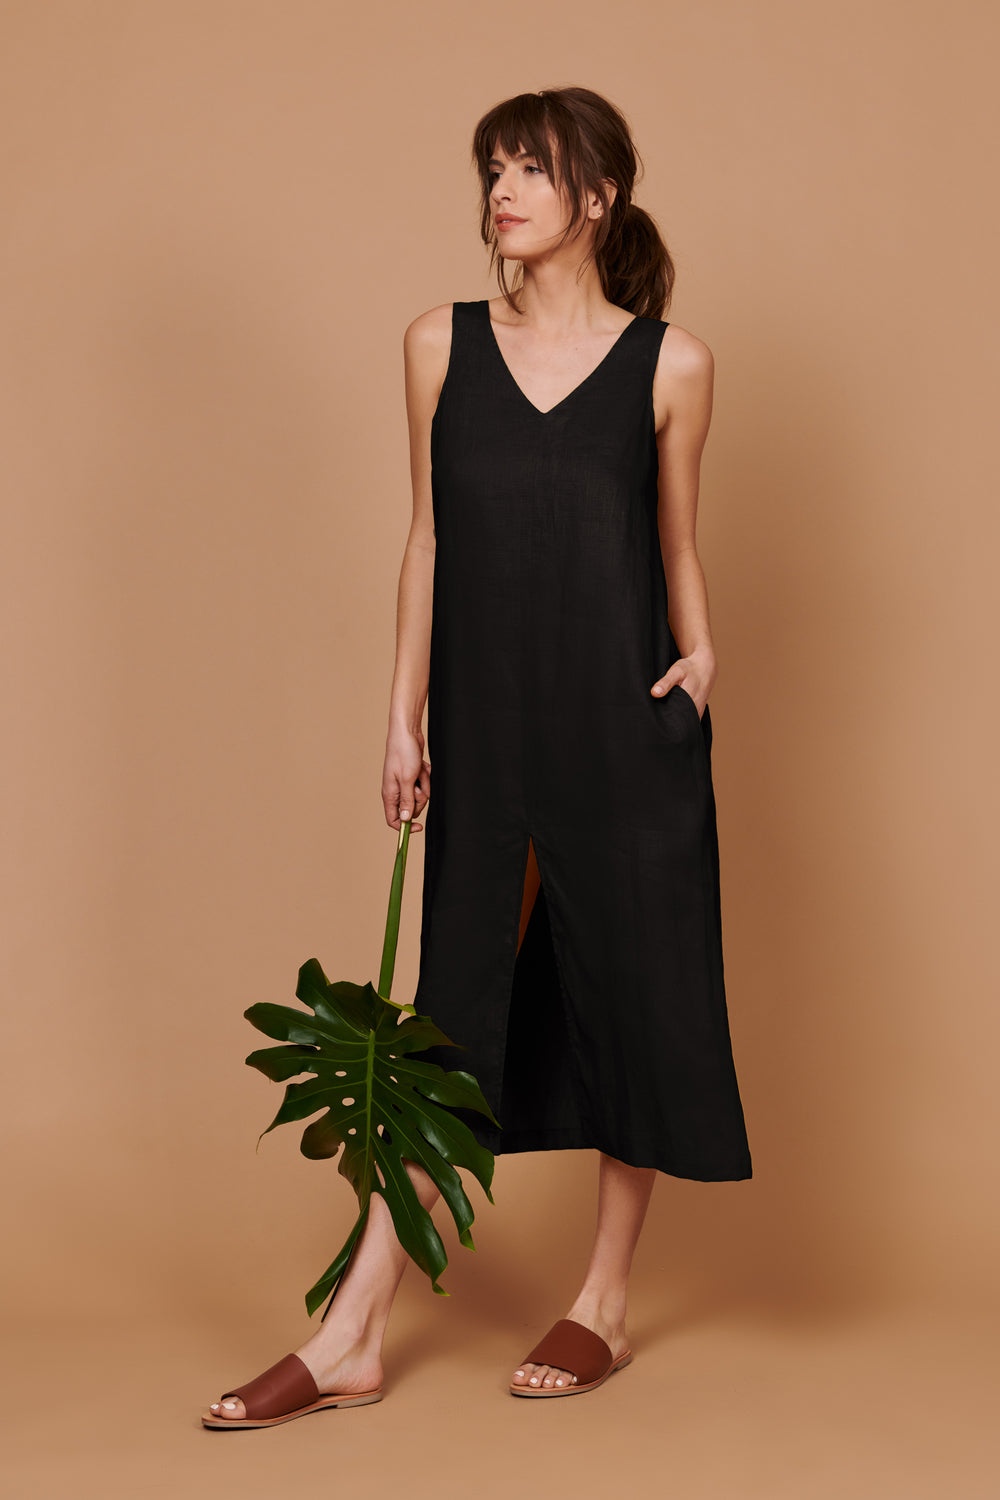 Luna Dress in Black Linen - Whimsy & Row